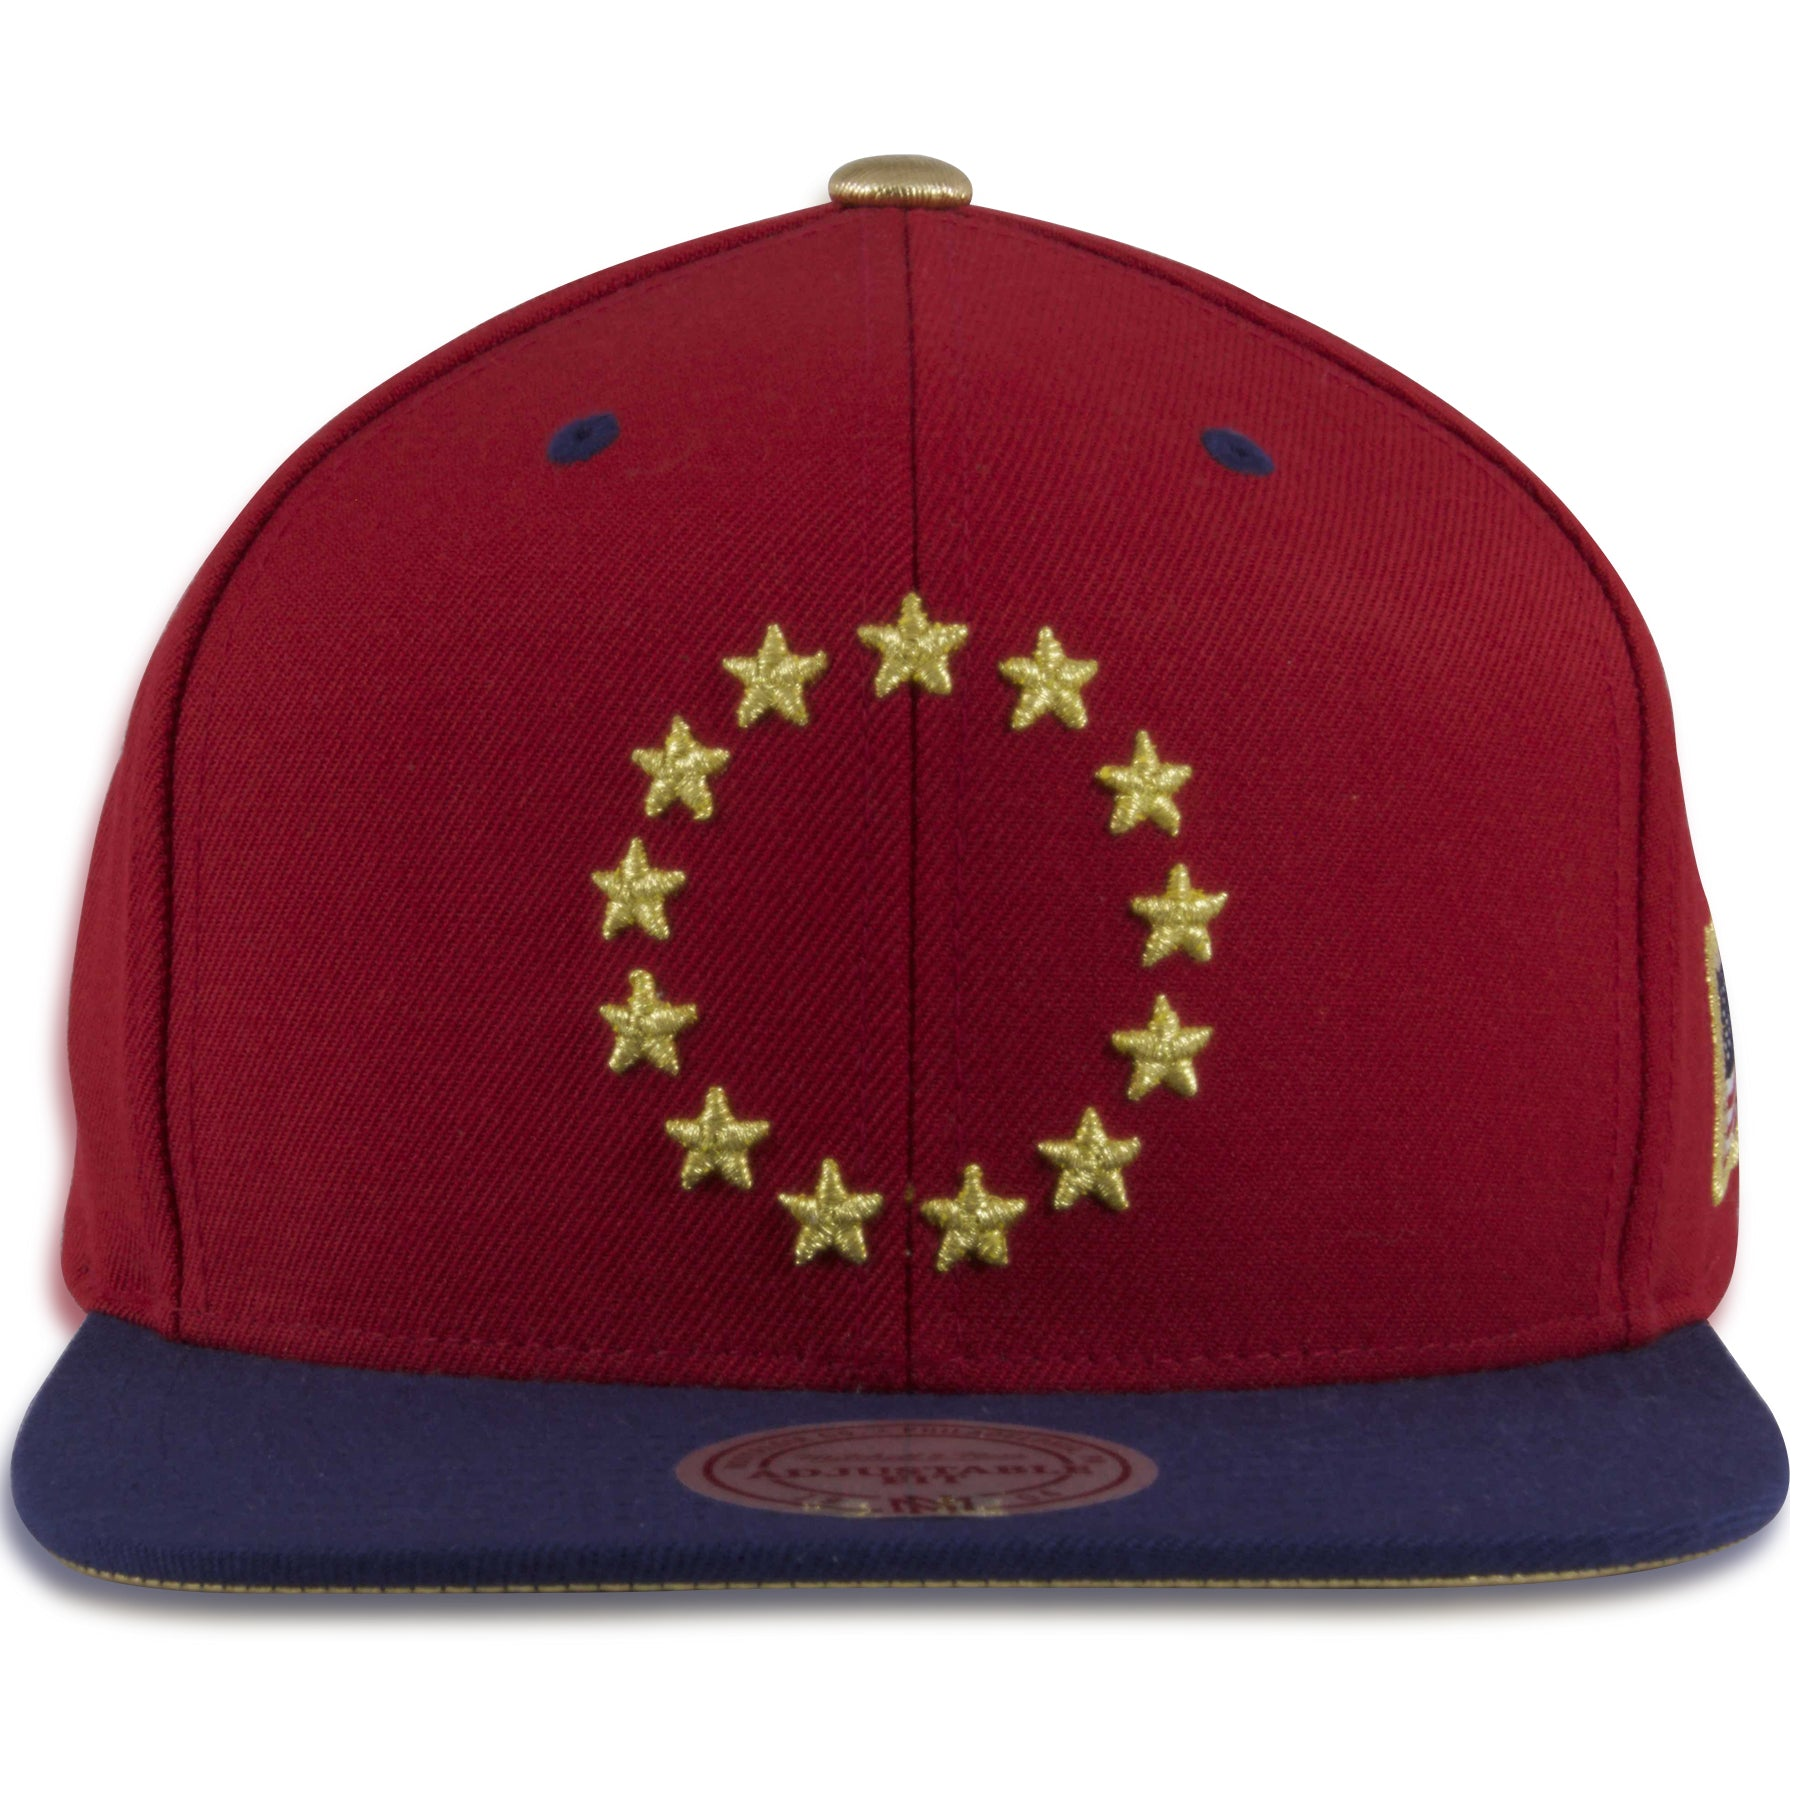 41c6d03c Philadelphia 76ers Red / Navy Blue Gold Star Circle Mitchell and Ness  Snapback Hat